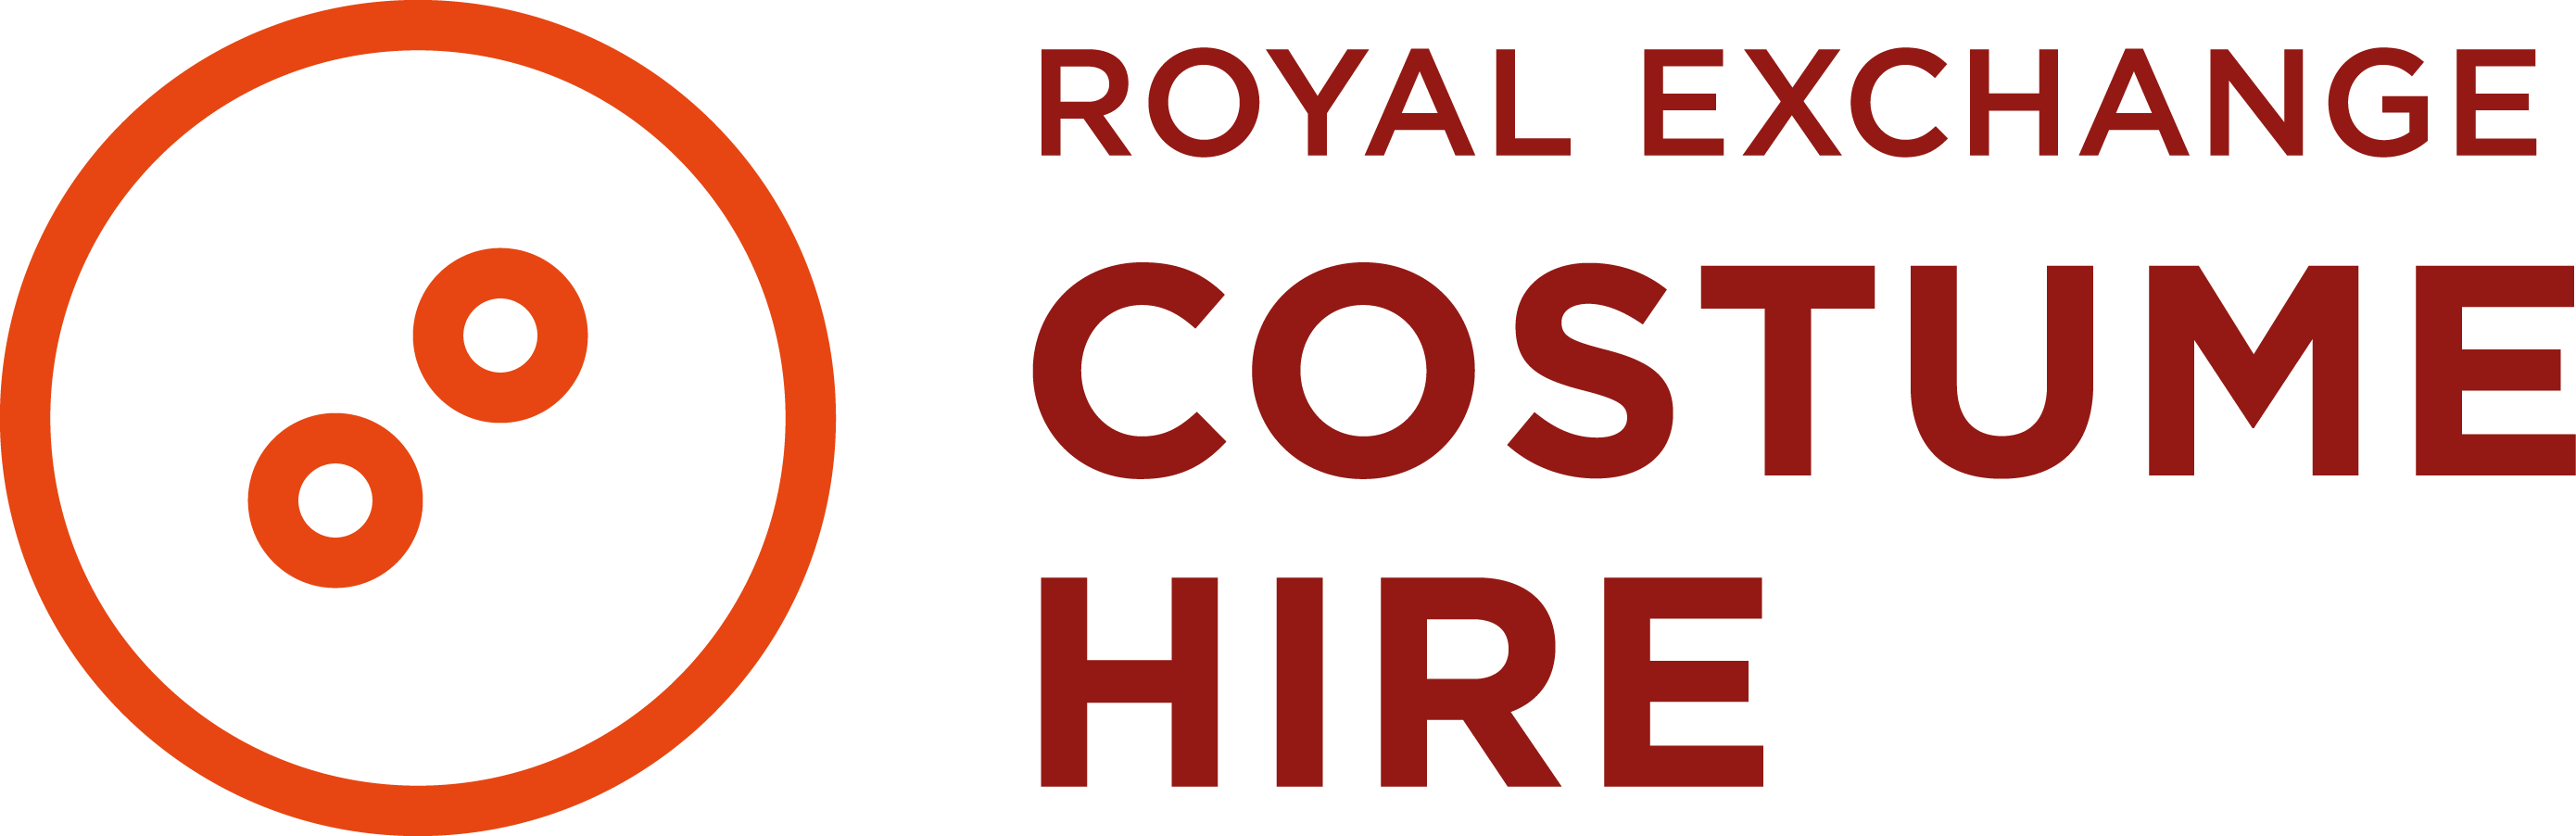 Costume Hire RGB